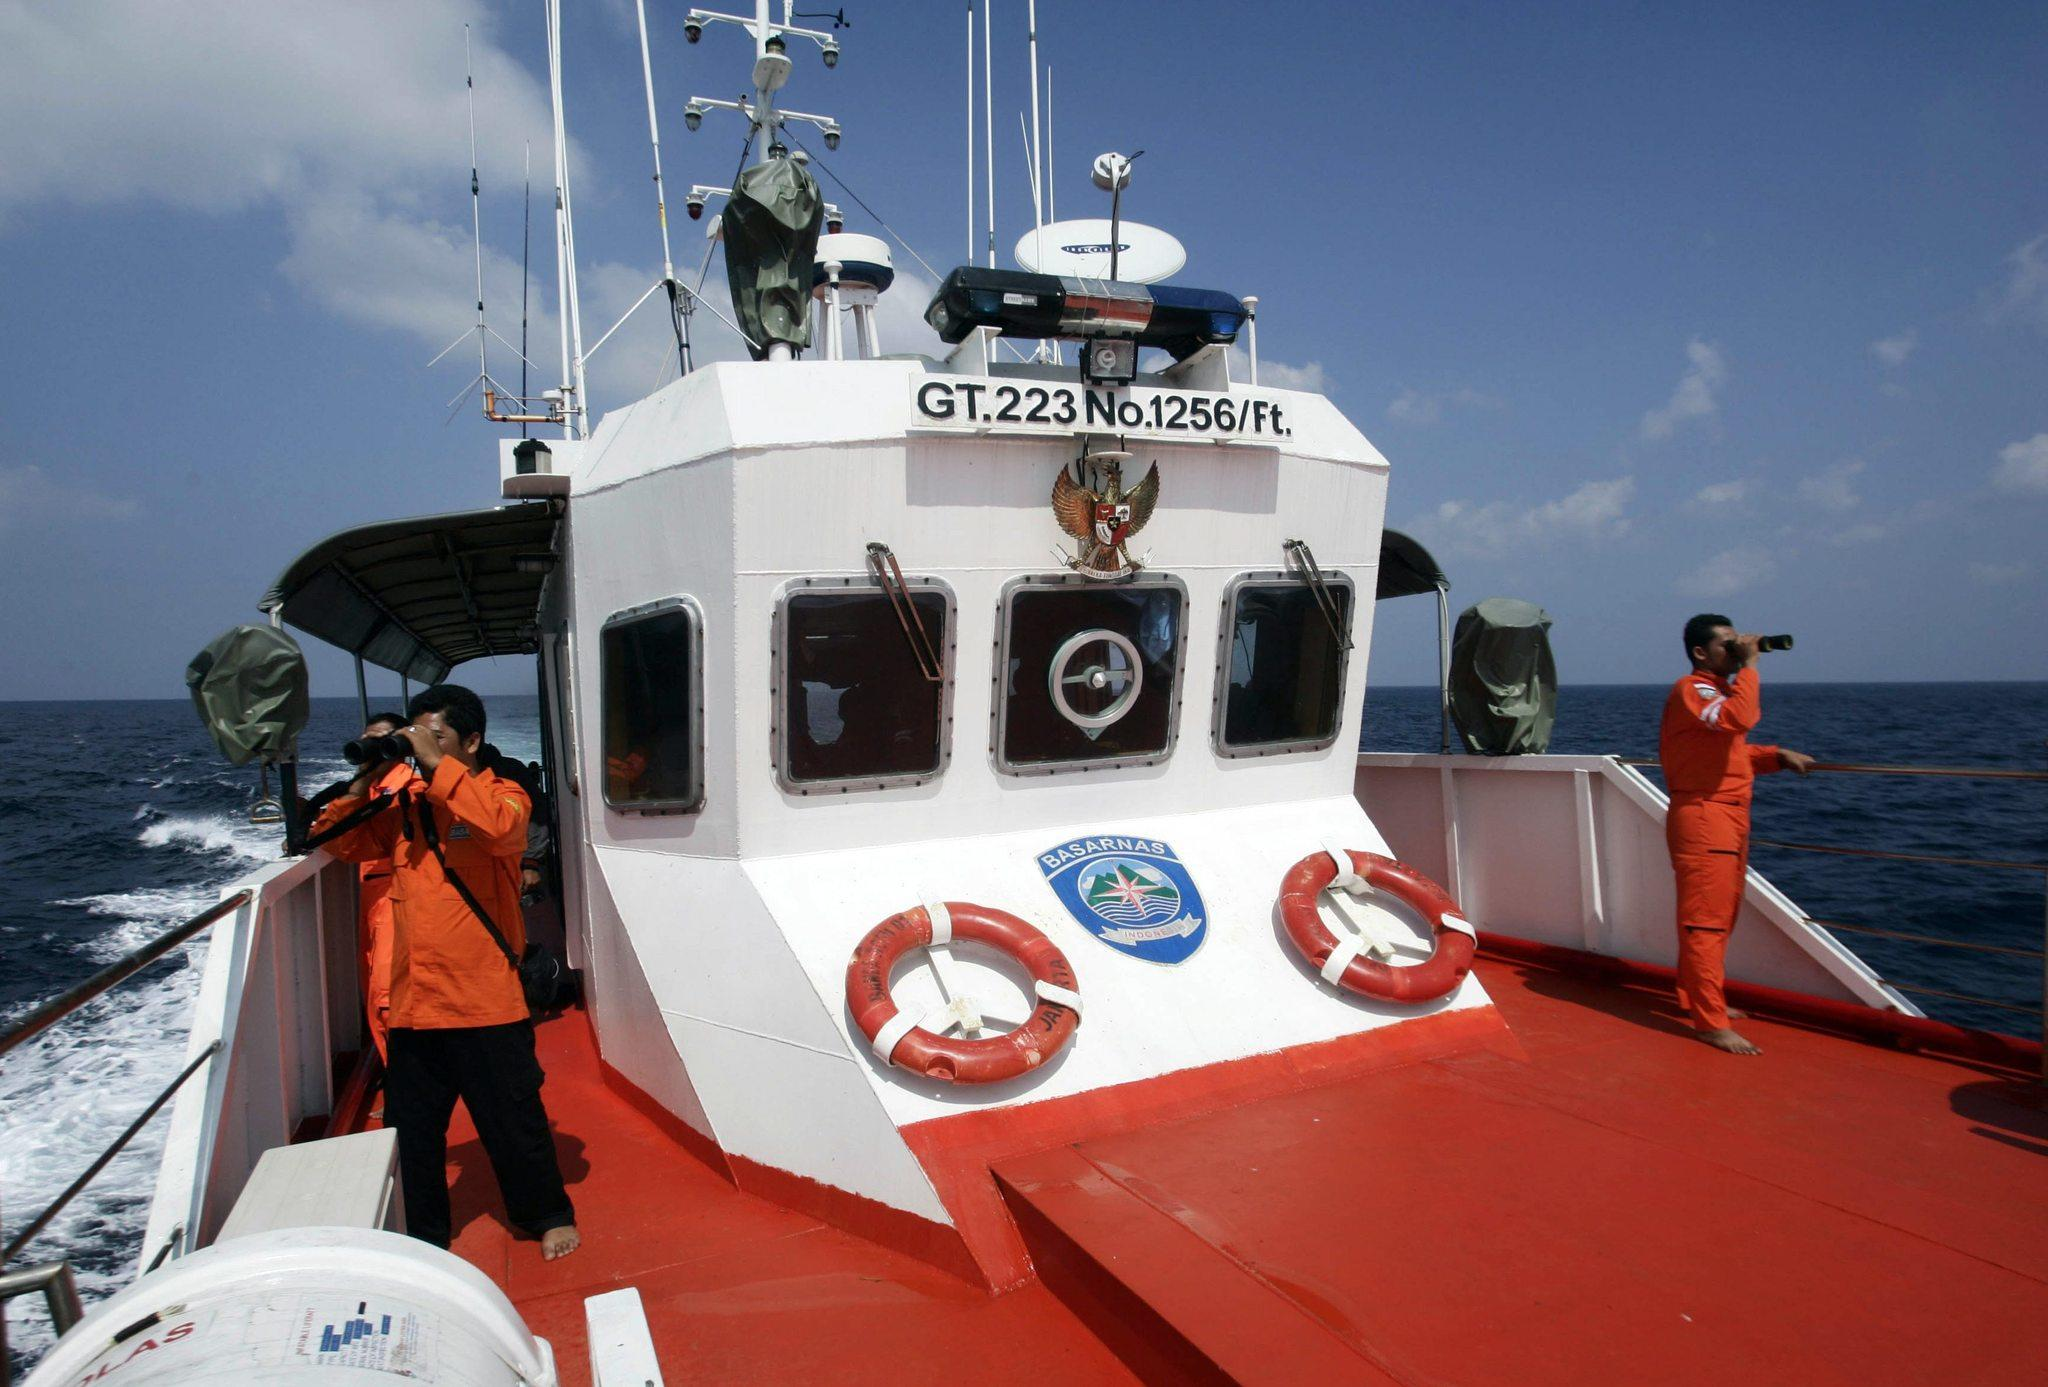 Rescue members on Wednesday use binoculars to look for missing Malaysia Airlines Flight 370 that disappeared from radar screens Saturday in the Straits of Malacca.